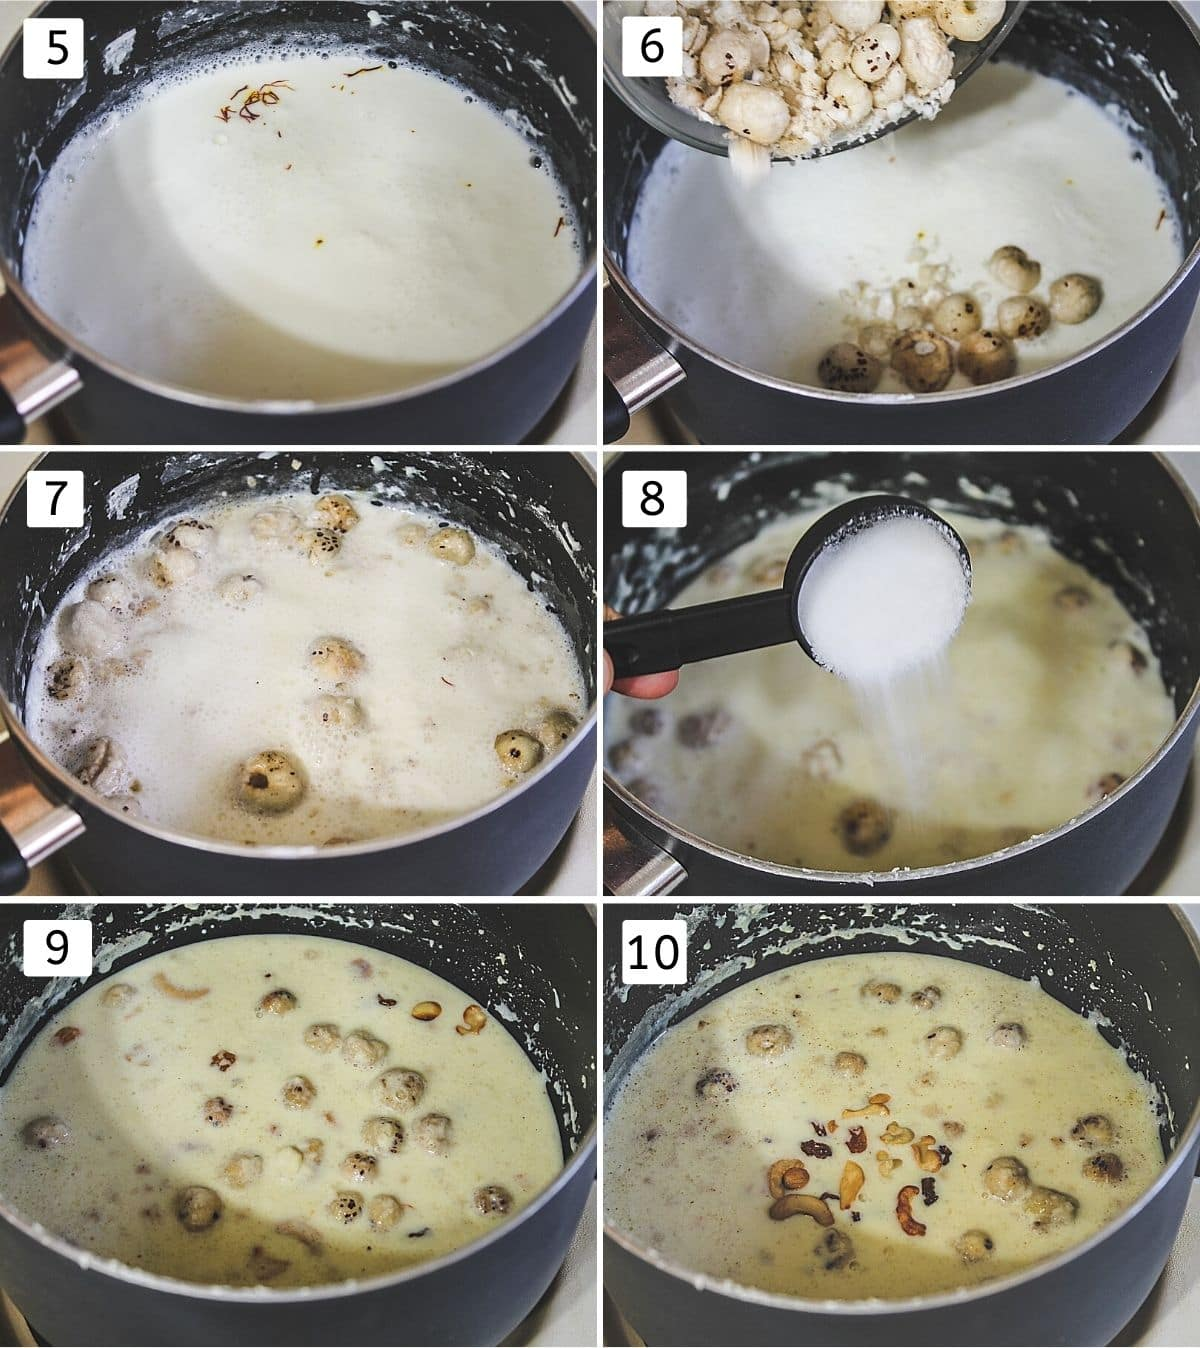 collage of 6 steps showing adding saffron and makhana in milk, simmered kheer, adding sugar, adding cardamom, adding cashews.